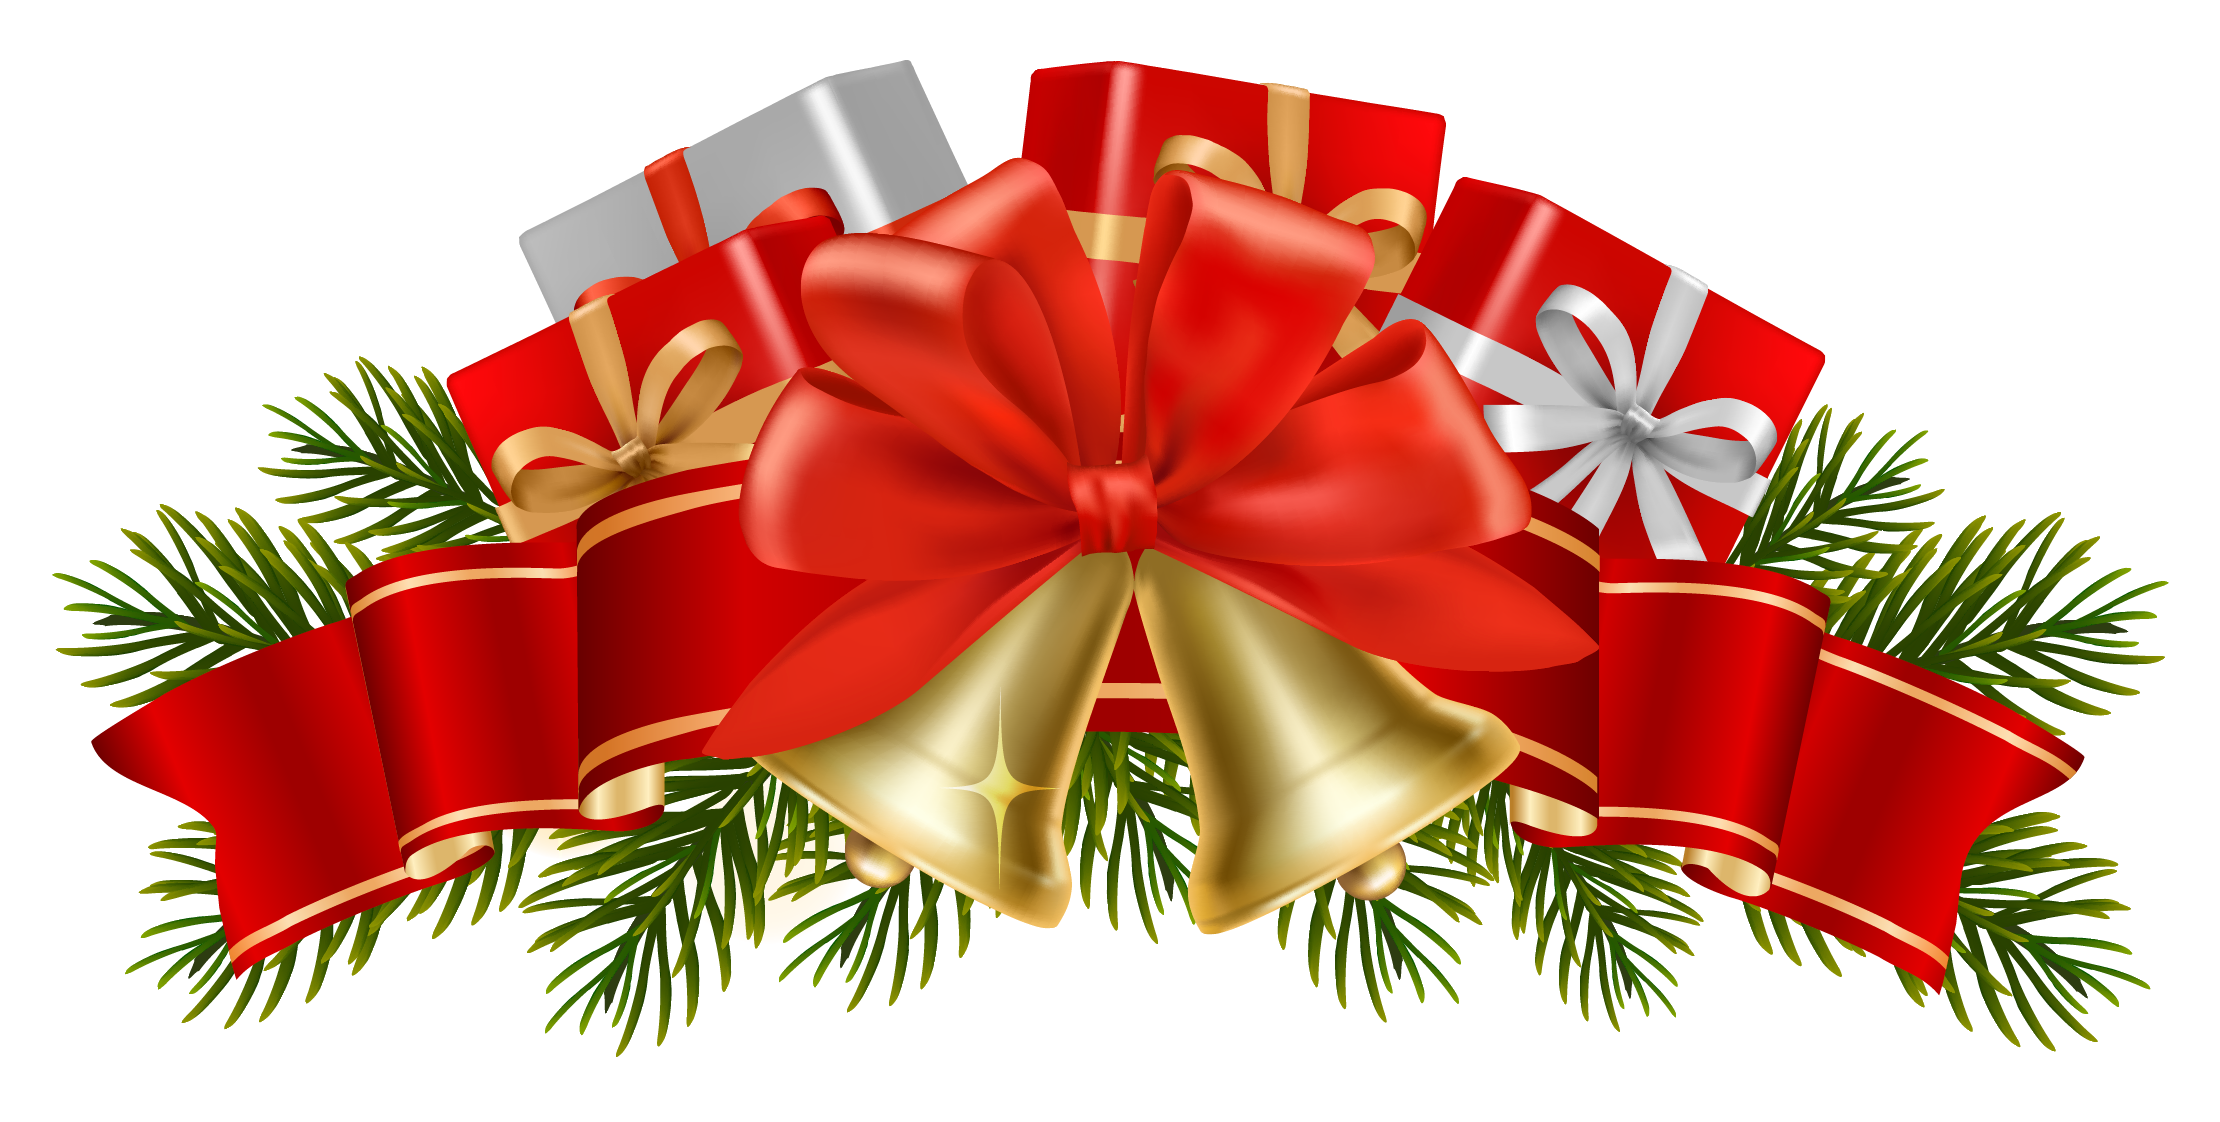 Christmas decoration PNG - Christmas Ornament PNG